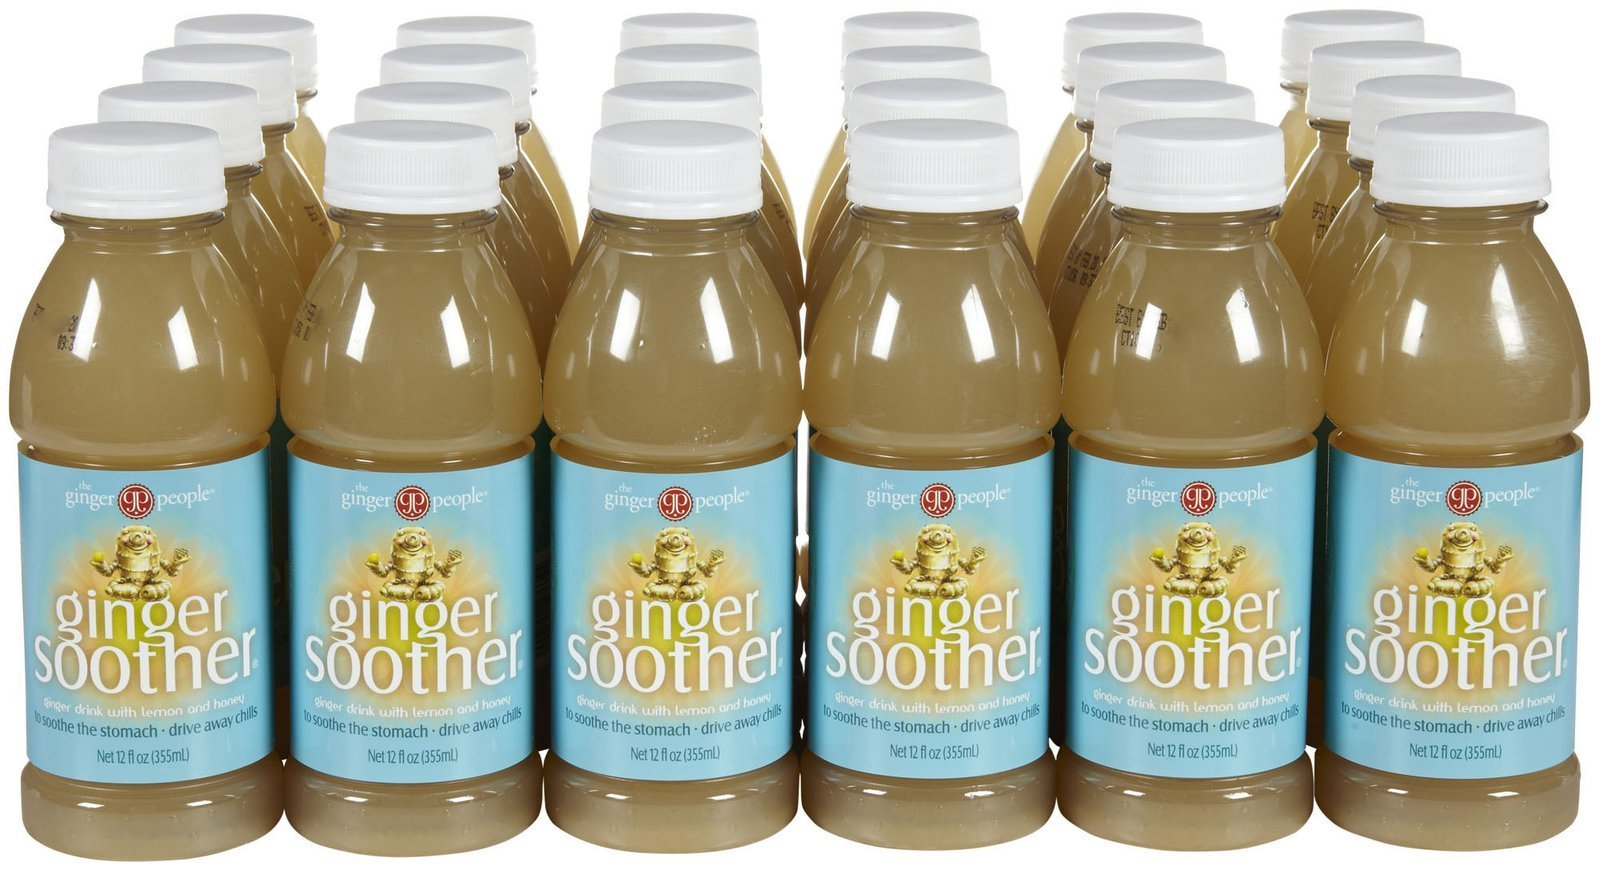 The Ginger People Ginger Soother - 12 oz - 24 pk by The Ginger People (Image #2)